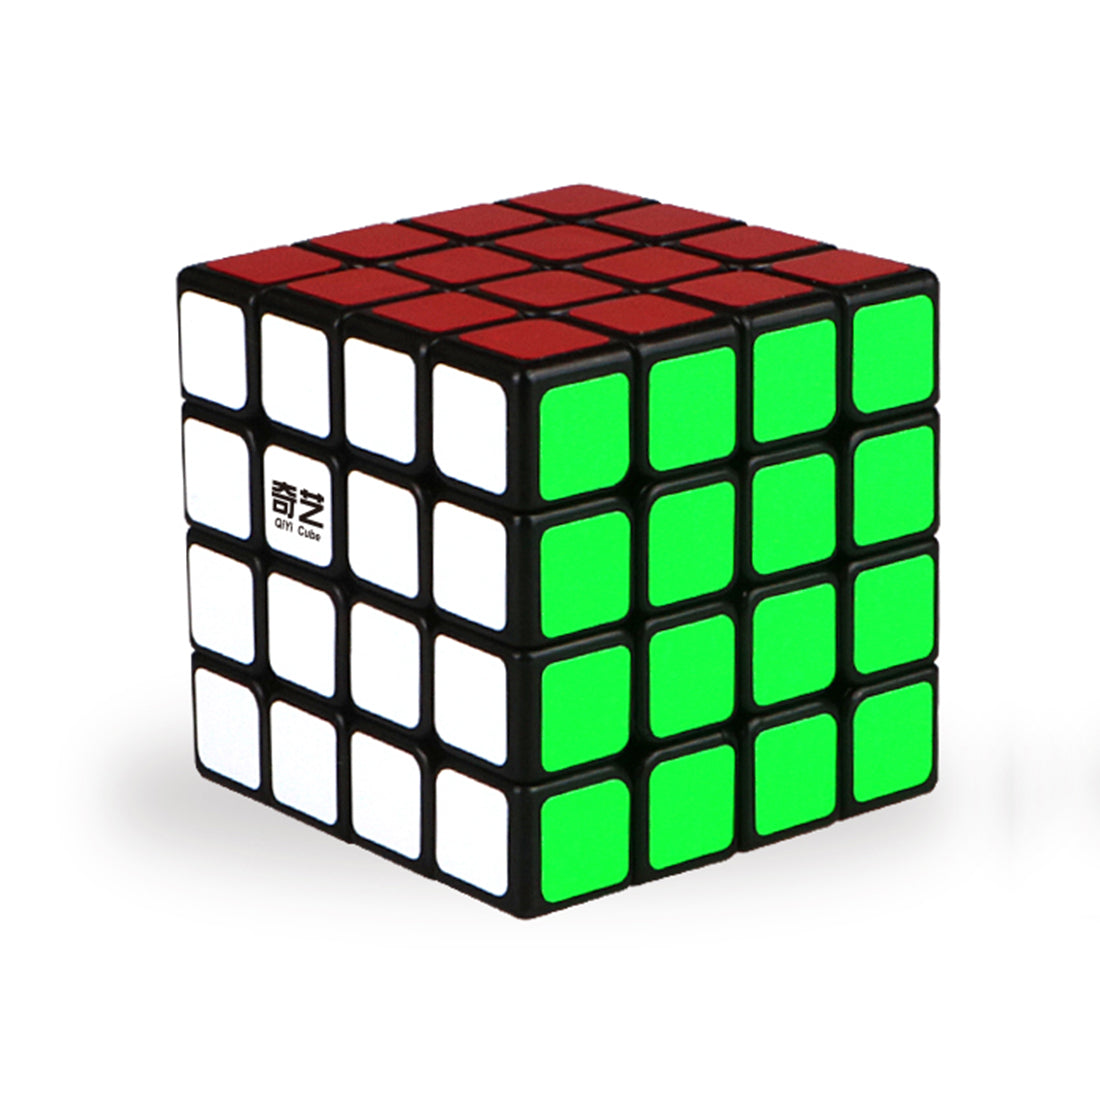 4x4 Magic Cube Puzzle Speed Cube